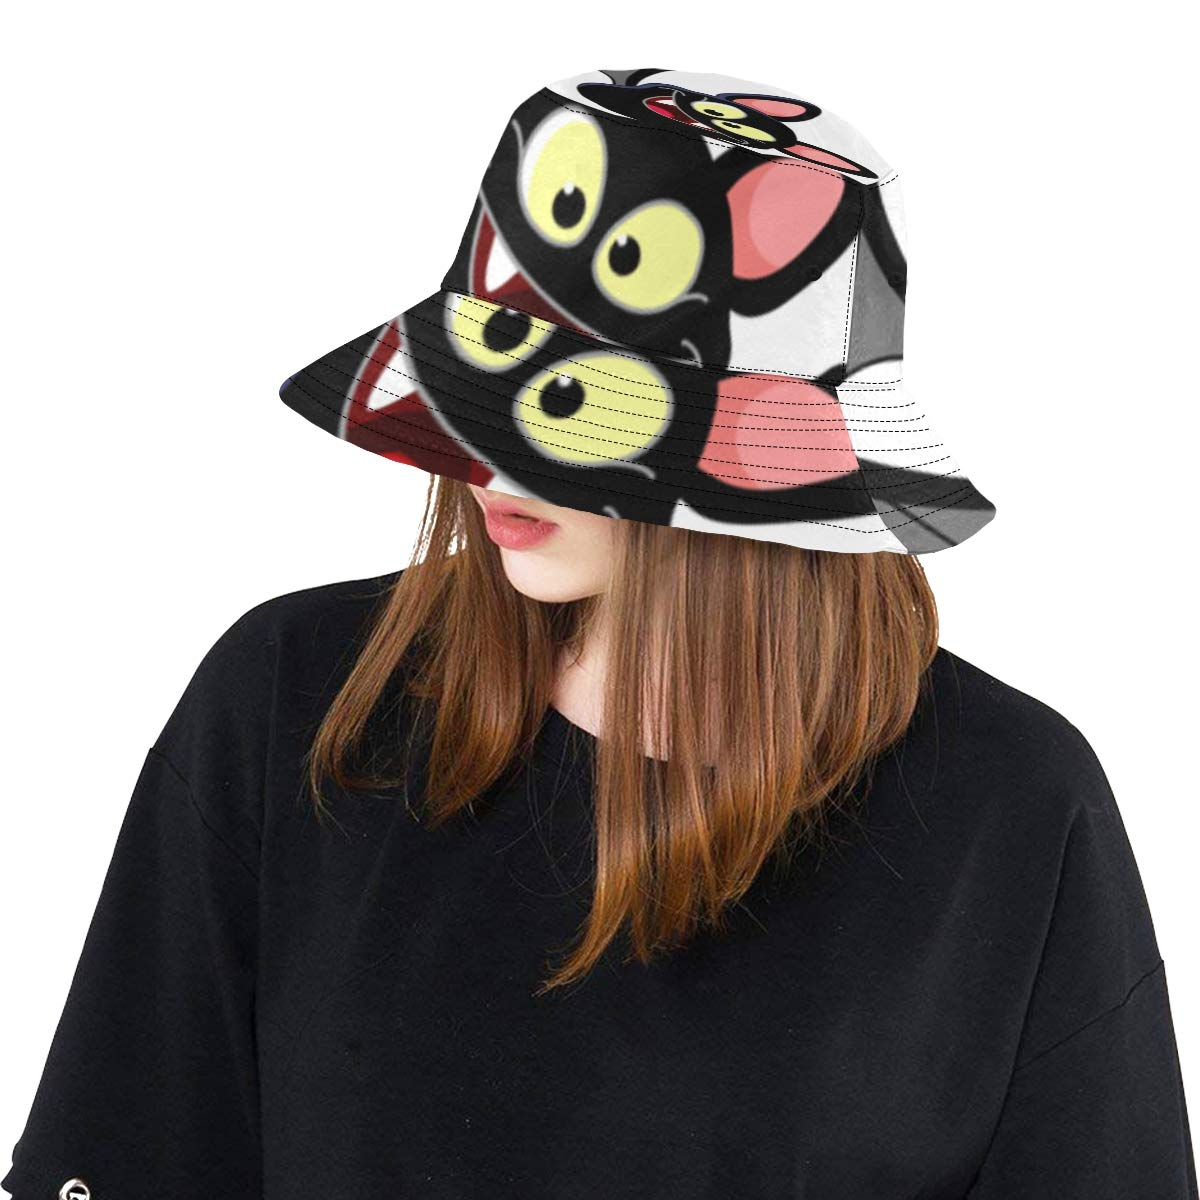 Flying Happy Bat New Summer Unisex Cotton Fashion Fishing Sun Bucket Hats for Kid Teens Women and Men with Customize Top Packable Fisherman Cap for Outdoor Travel